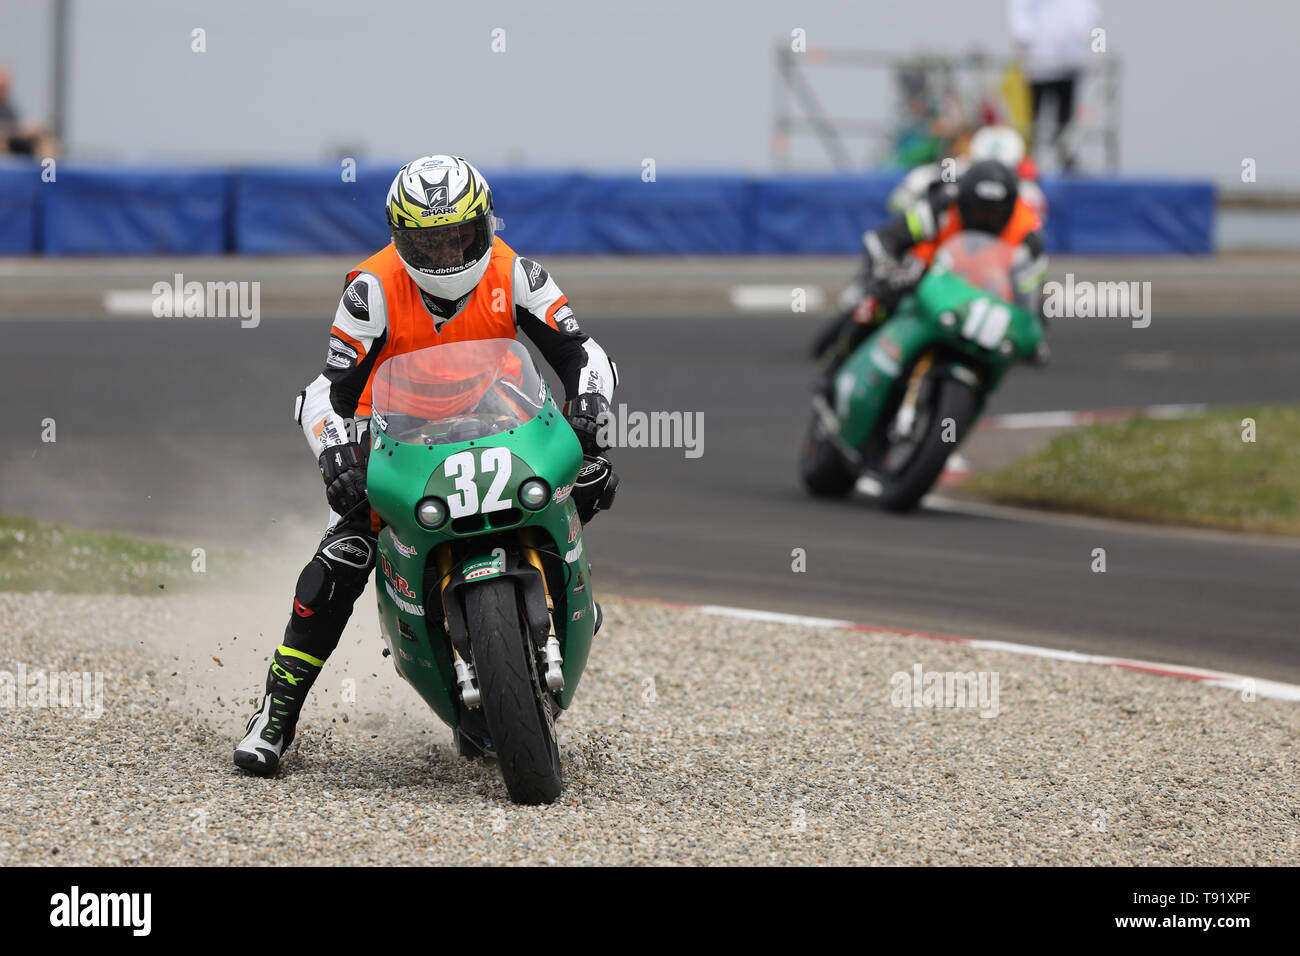 Portrush, Northern Ireland. 16th May, 2019. International North West 200 Motorcycle road racing, Thursday practice and evening racing; Carl Phillips (ILR/Mark Cloverdale Paton) in the gravel trap at Juniper chicane Credit: Action Plus Sports/Alamy Live News - Stock Image